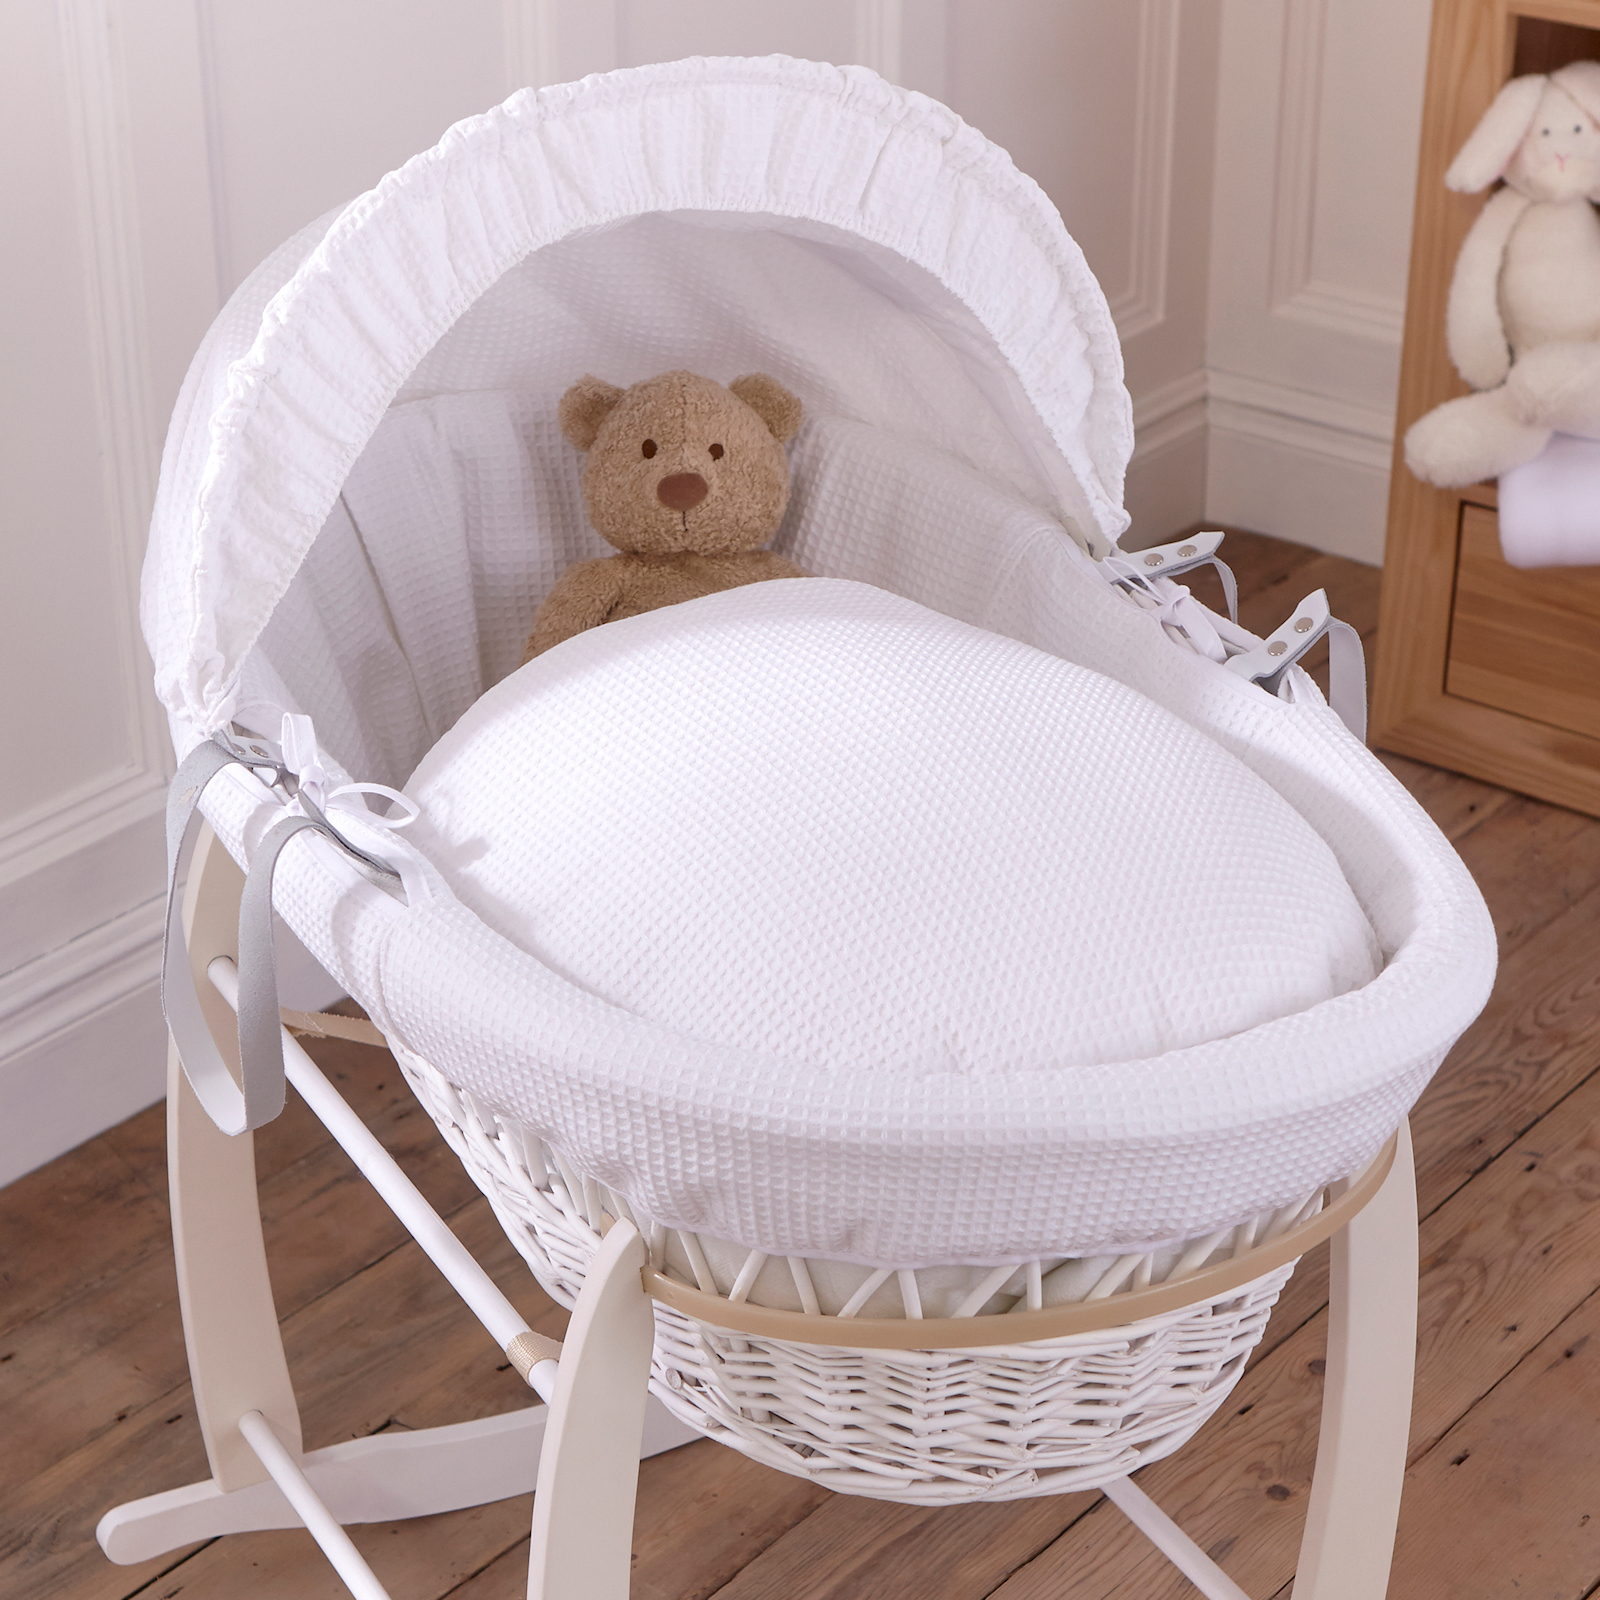 Baby Cots Next Clair De Lune Deluxe Padded White Wicker Baby Moses Basket